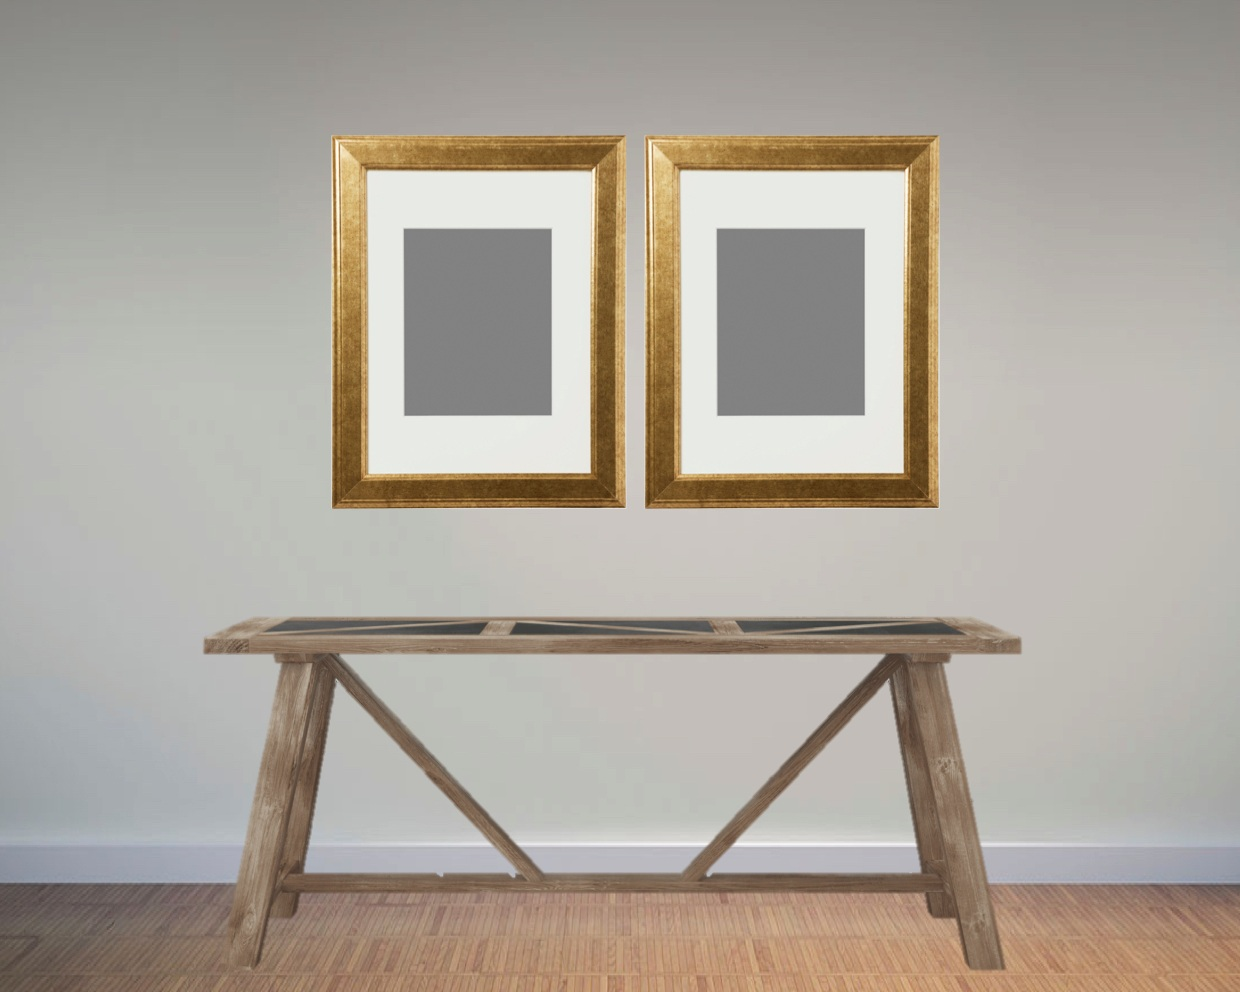 If you prefer simplicity and symmetry, two large frames are the perfect layout in this scenario.